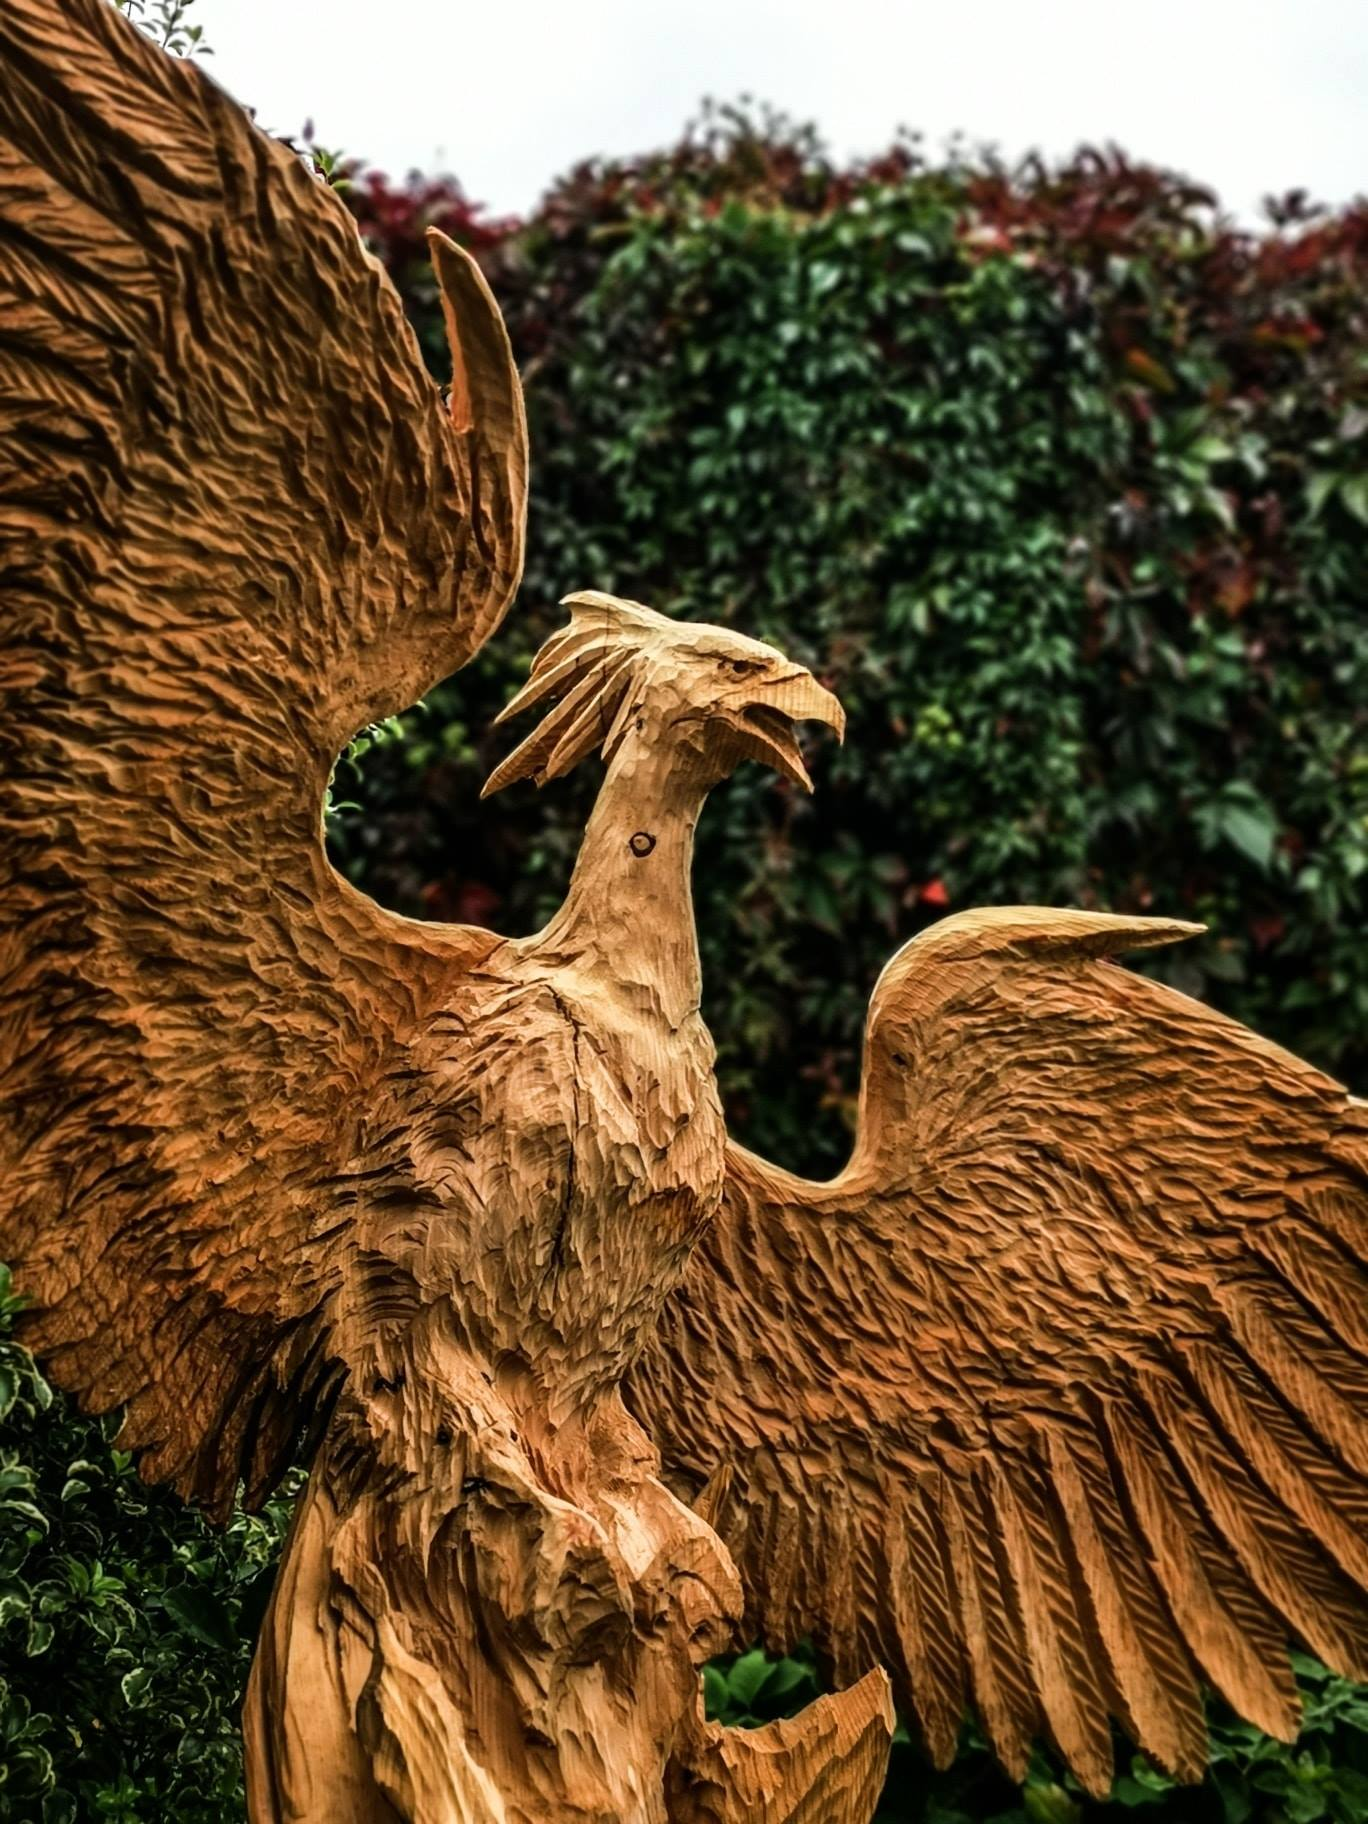 phoenix carved into a cedar trunk by artist simon o'rourke, one of his sculptures of 2020